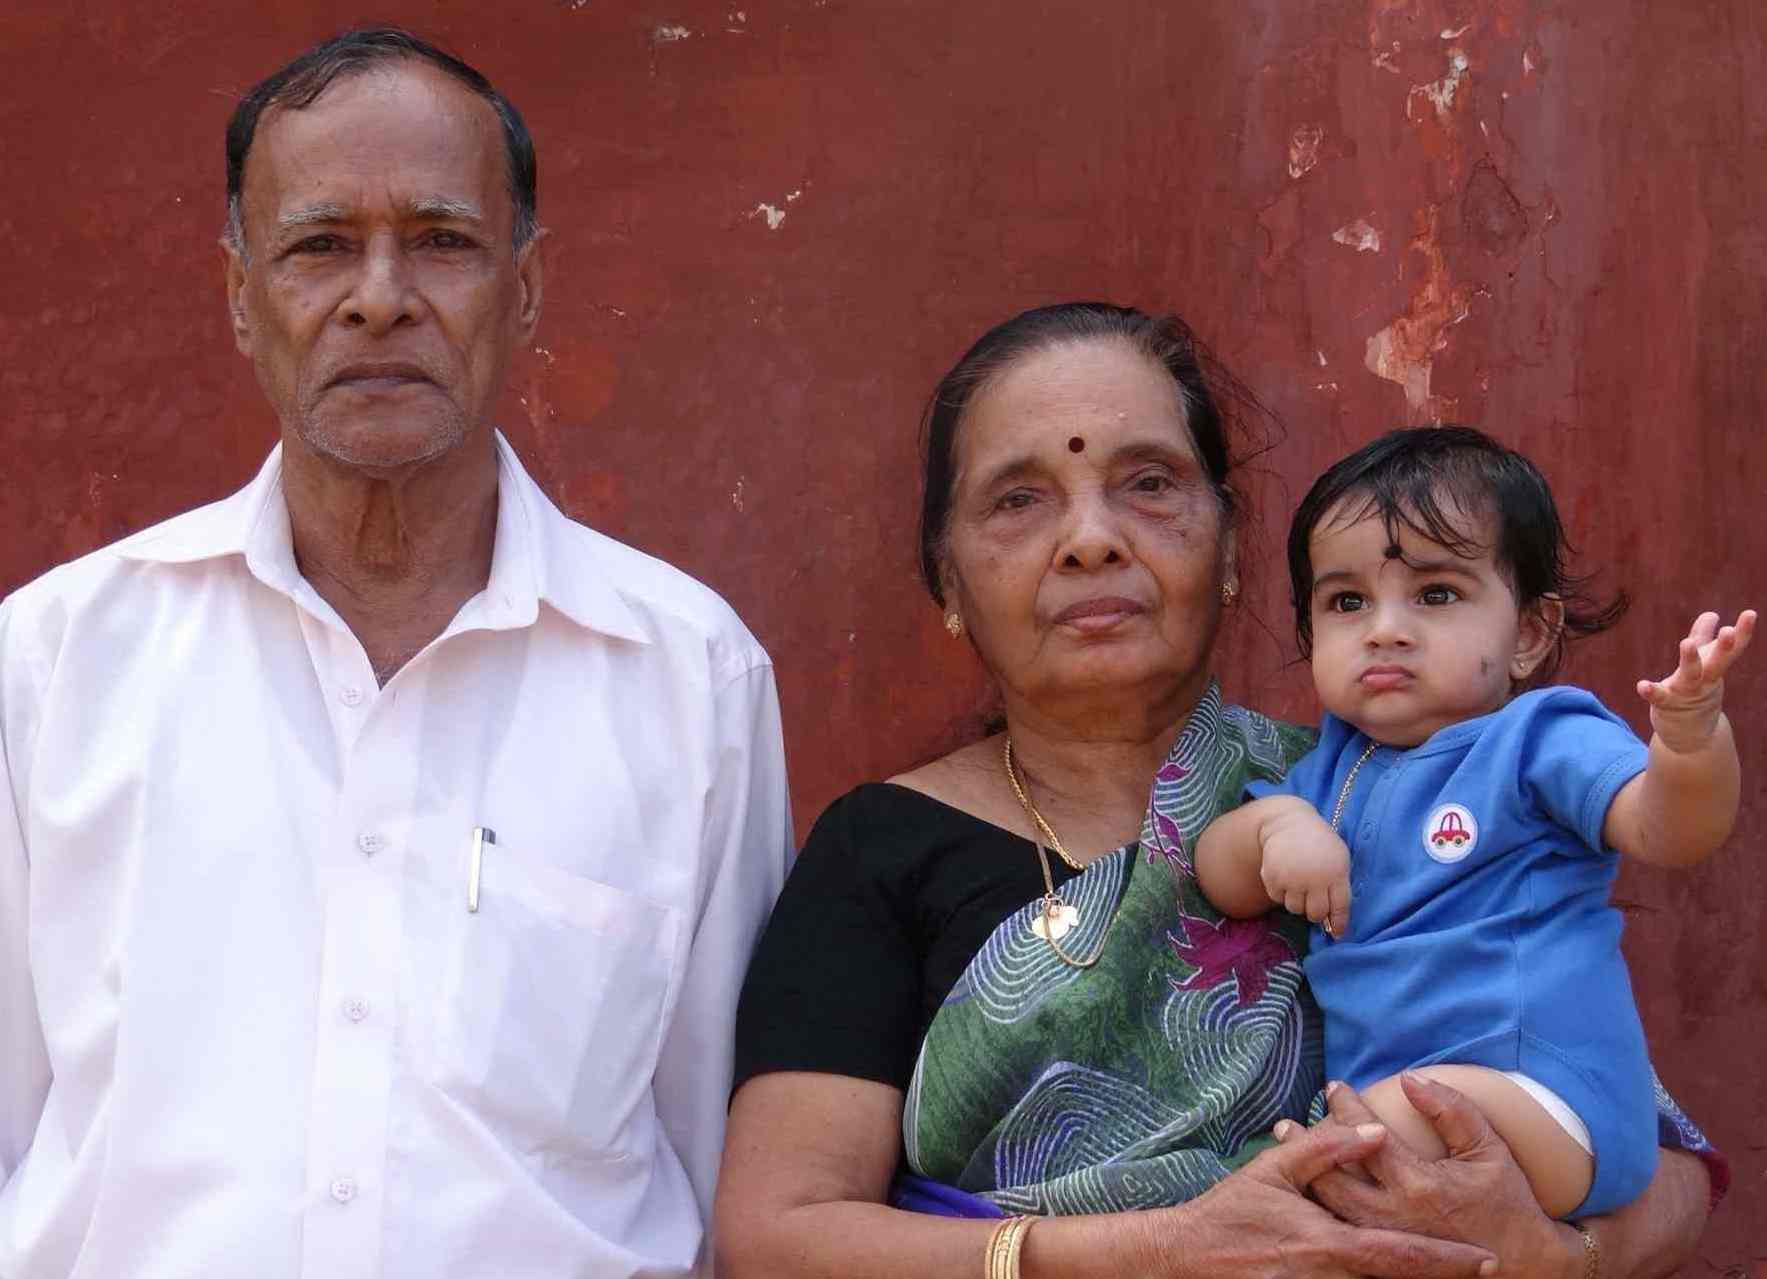 Aakshath Das with his grandparents